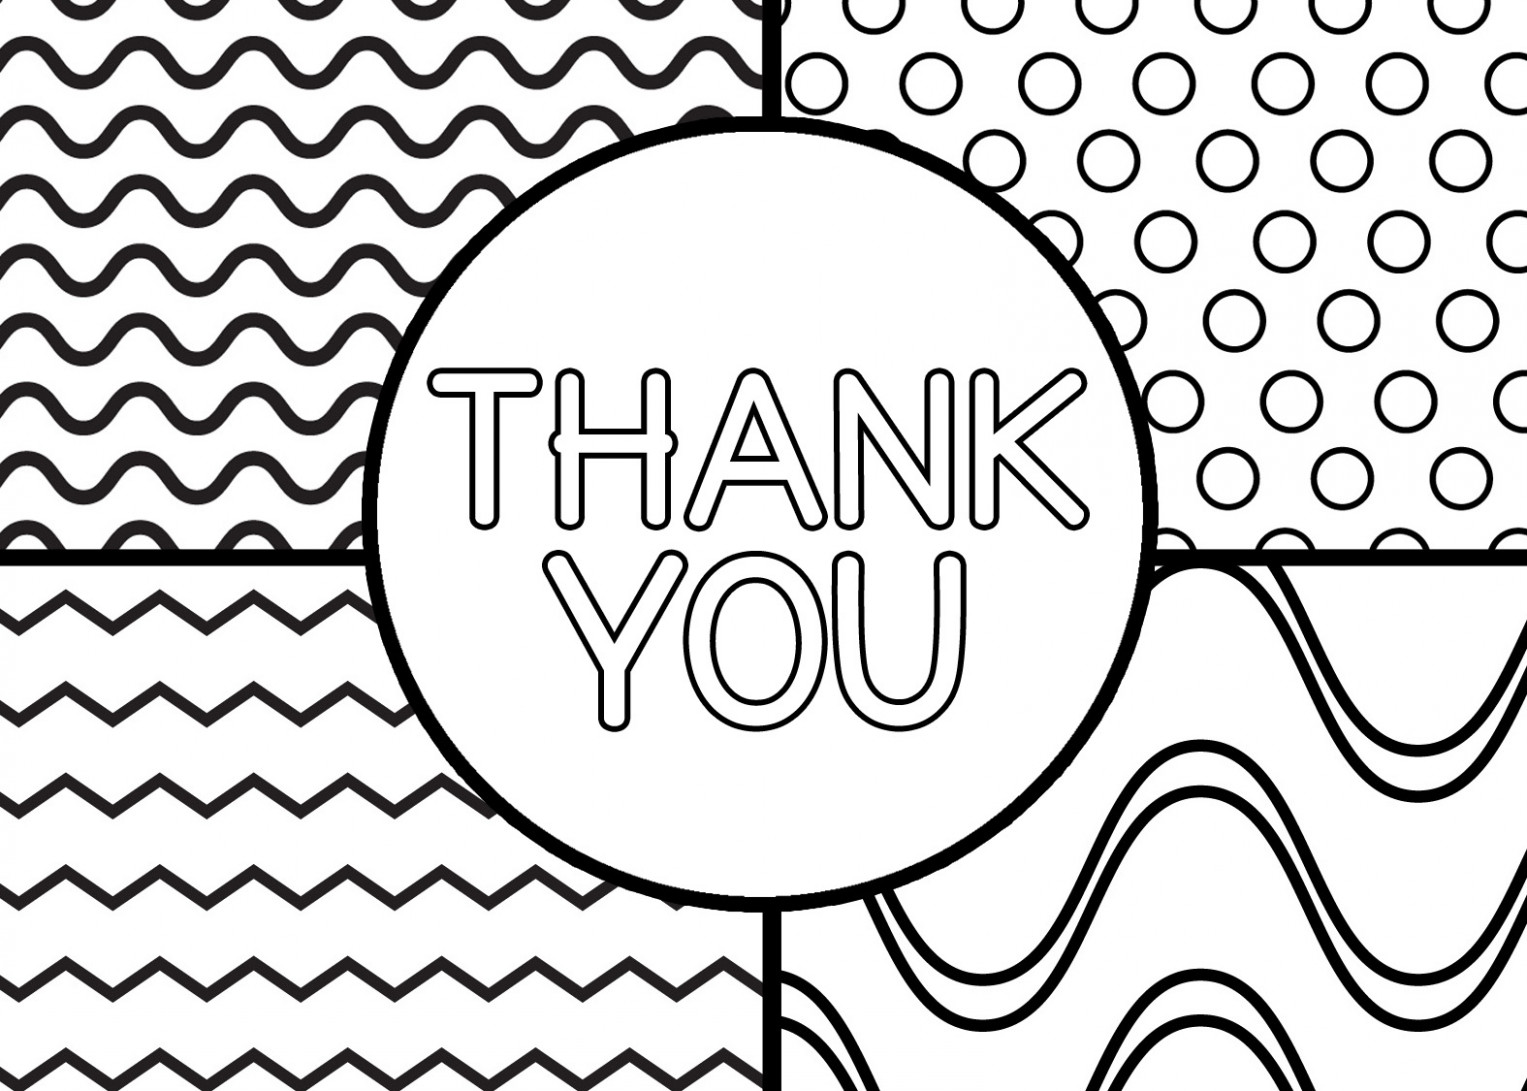 thank you card coloring page - Villa-chems